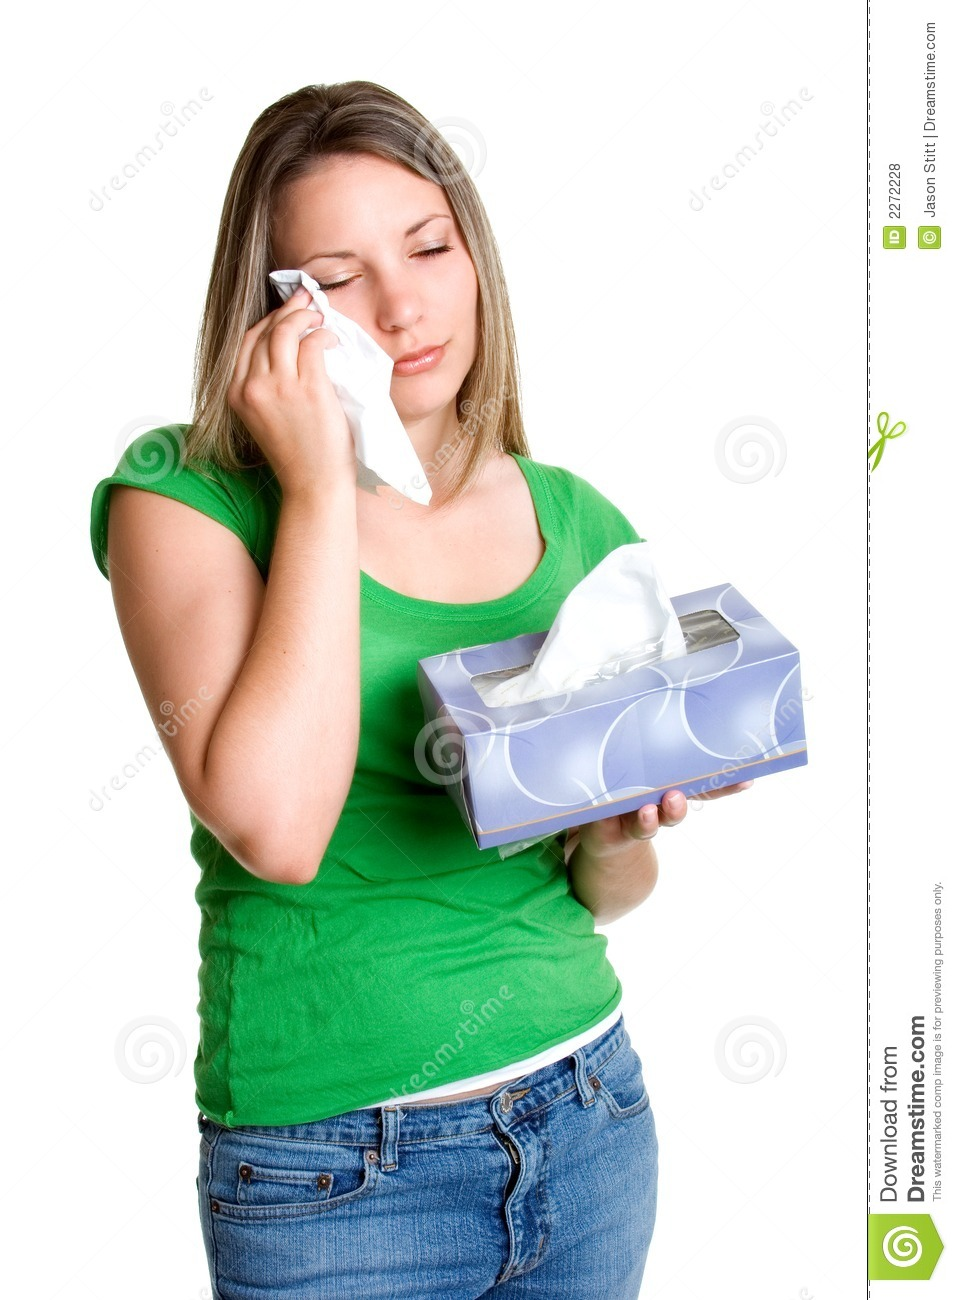 Video Girl Dress: Crying Girl Stock Photo. Image Of Weeping, Young, Girls